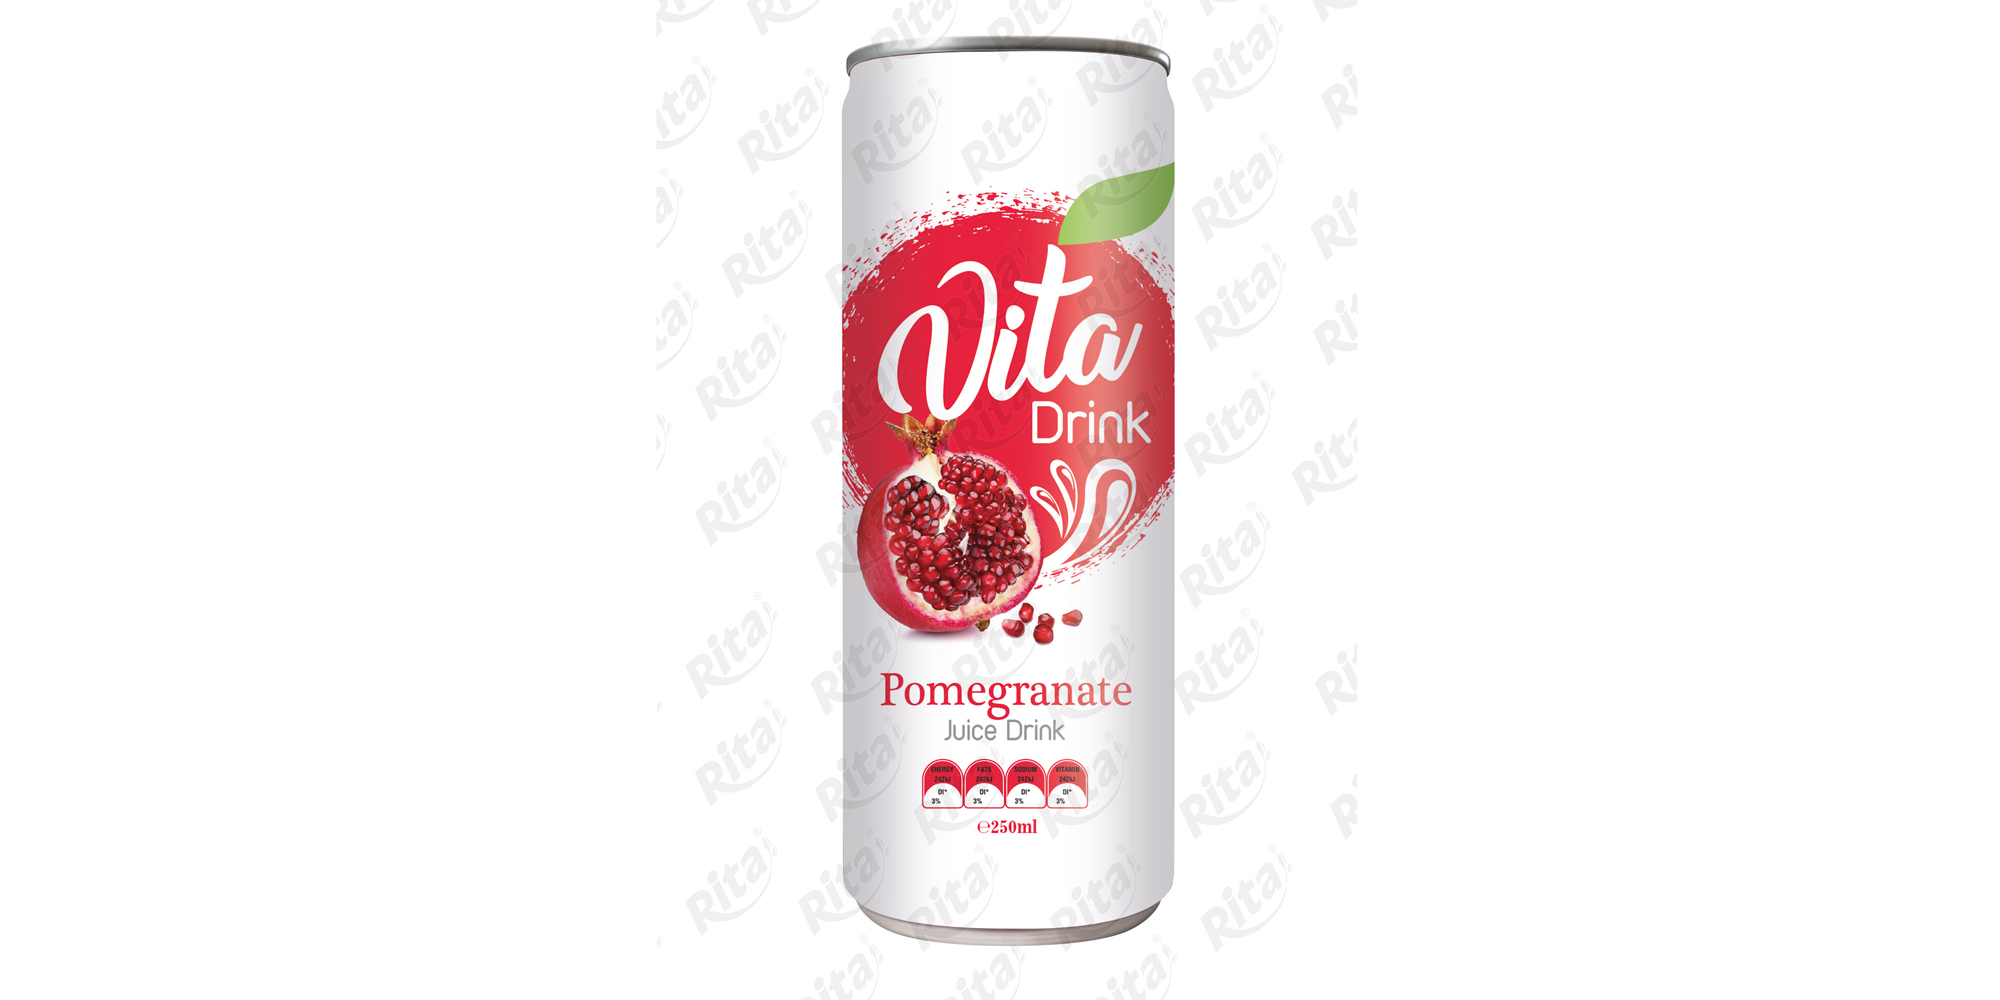 Rita private label OEM beverages Pomegranate juice drink 250ml